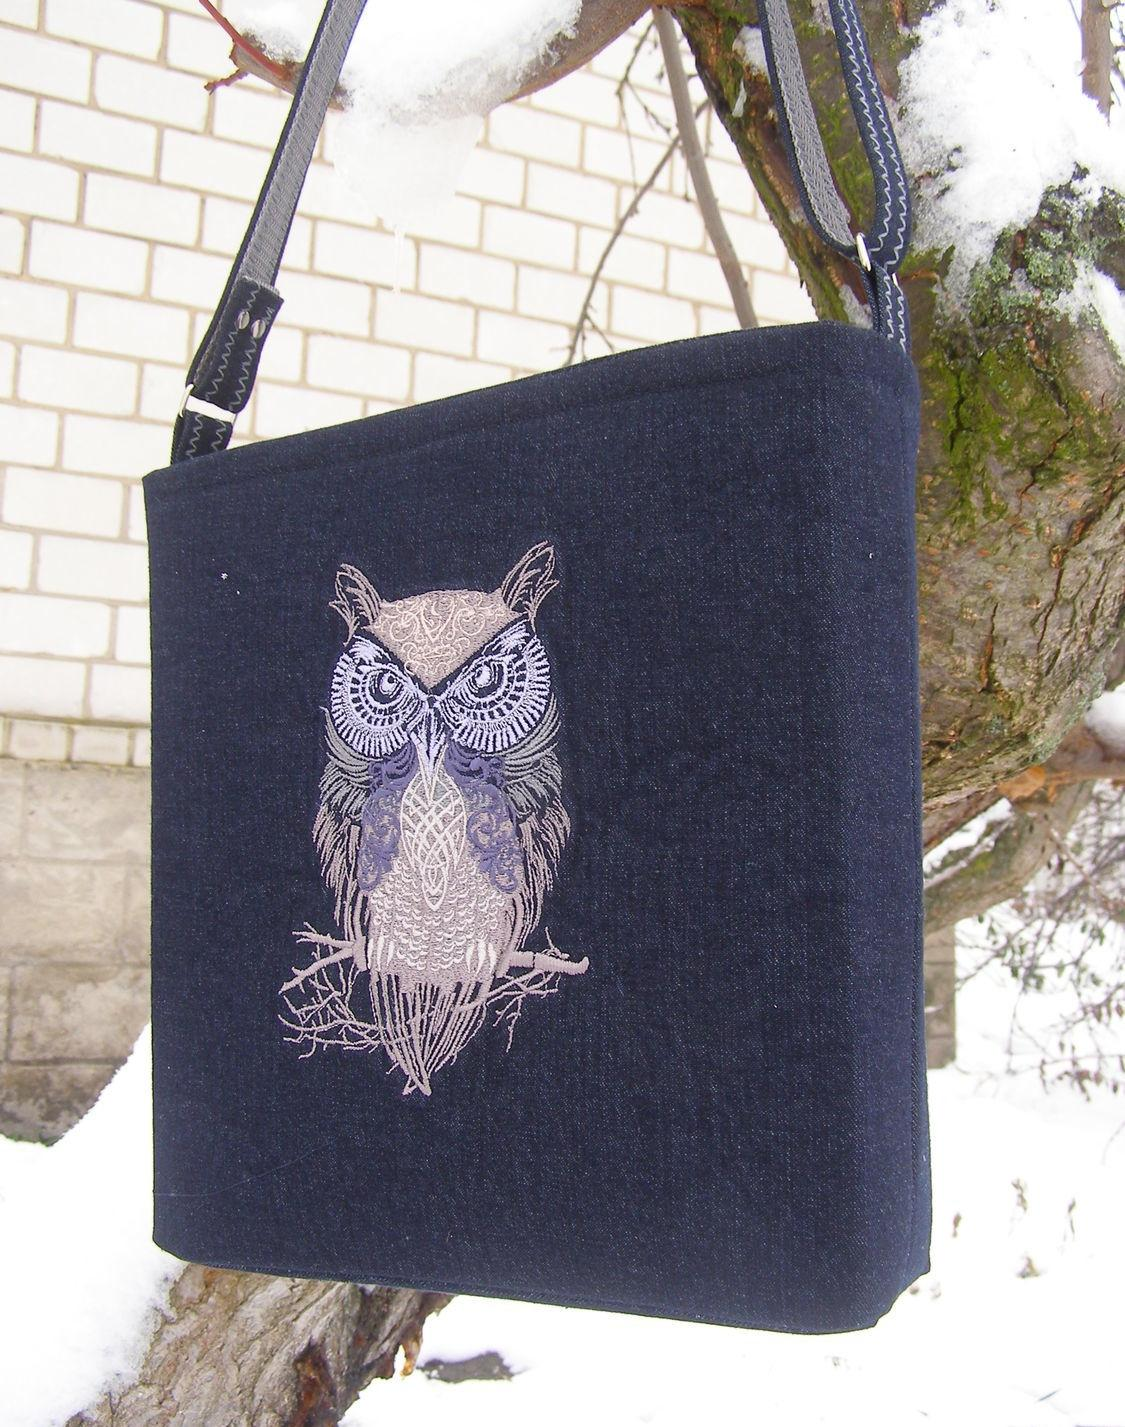 Embroidered bag with Tribal forest owl design